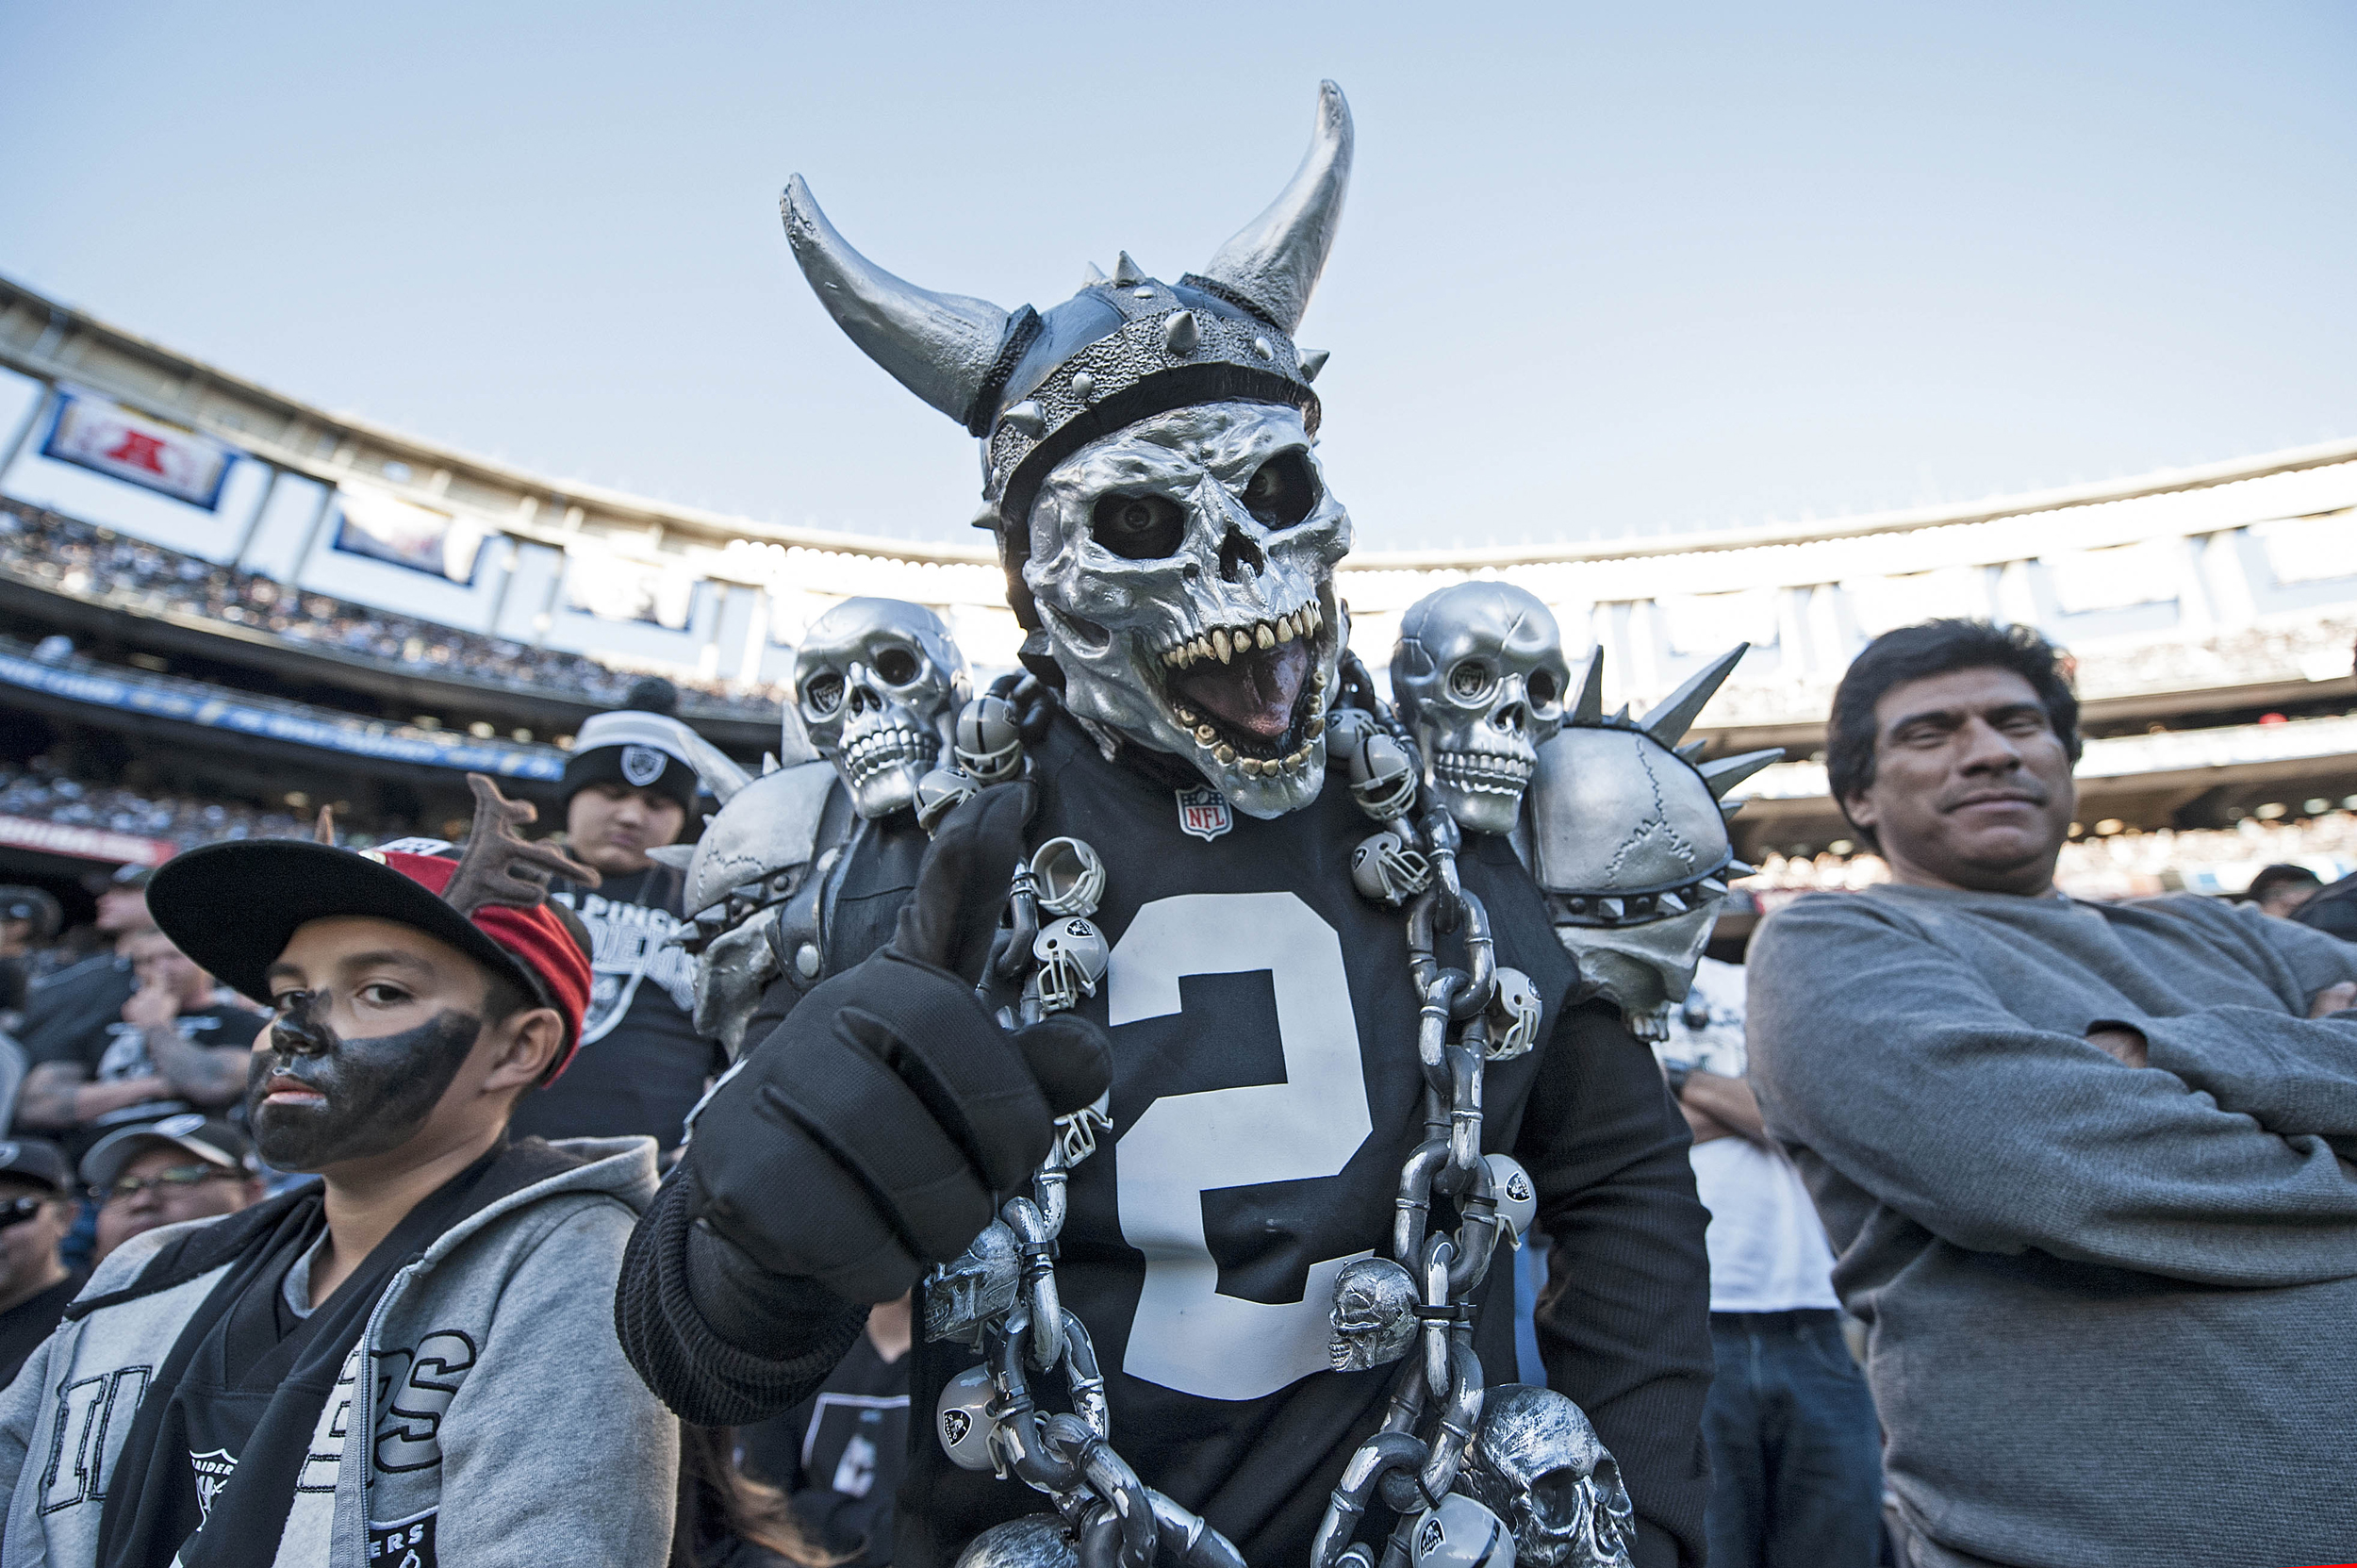 An Oakland Raiders fan reacts en route to the Raiders 19-16 win over the San Diego Chargers at Qualcomm Stadium on December 18, 2016 in San Diego, California.